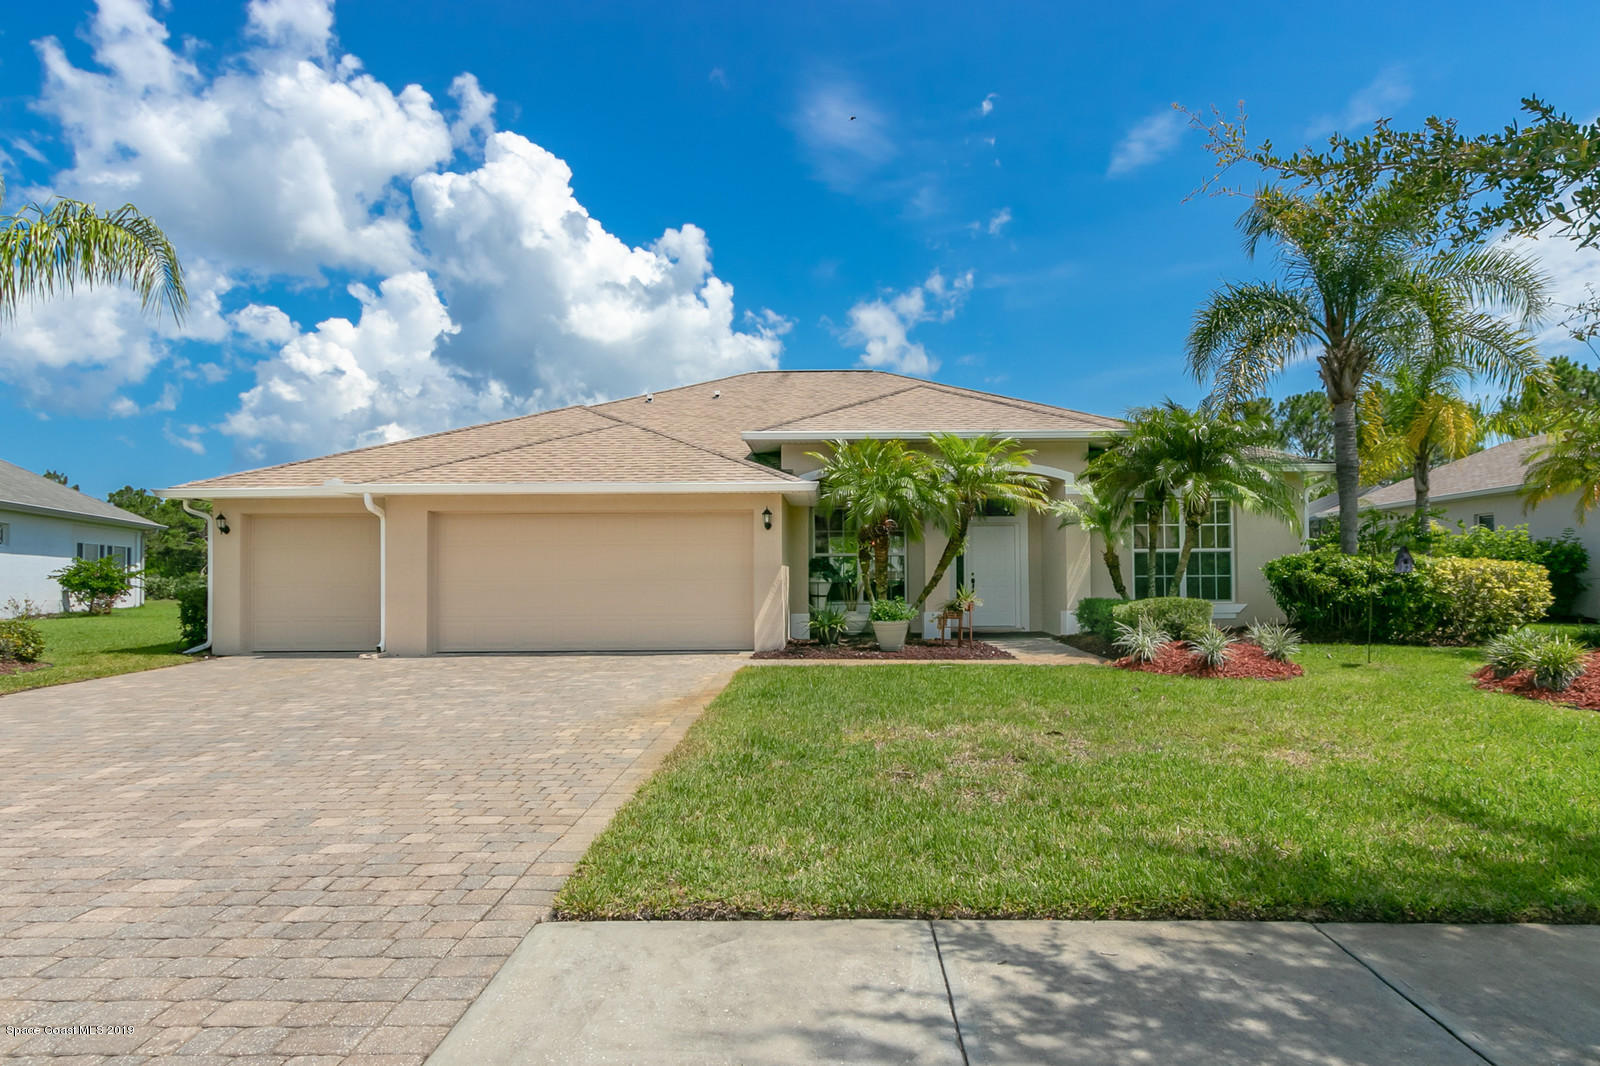 Single Family Homes for Sale at 109 Ridgemont Palm Bay, Florida 32909 United States